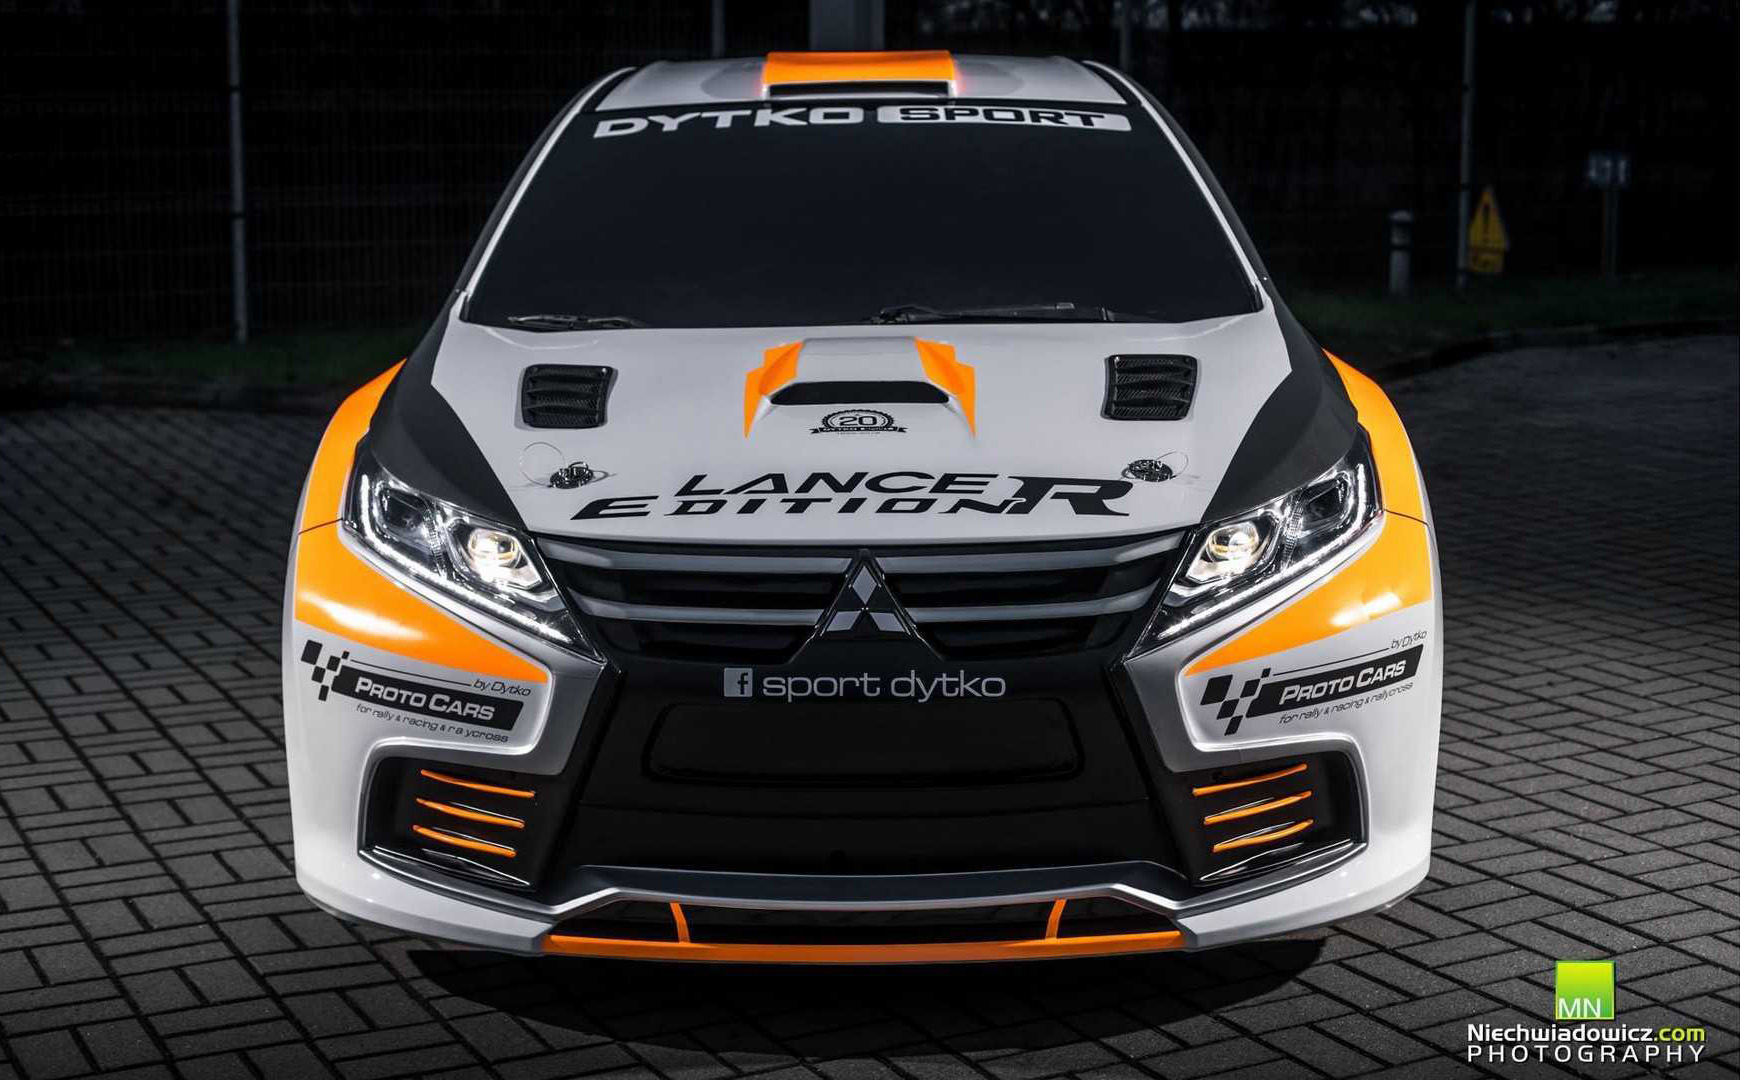 New Lancer Edition R 2019 - by Proto Cars and Dytko Sport 2